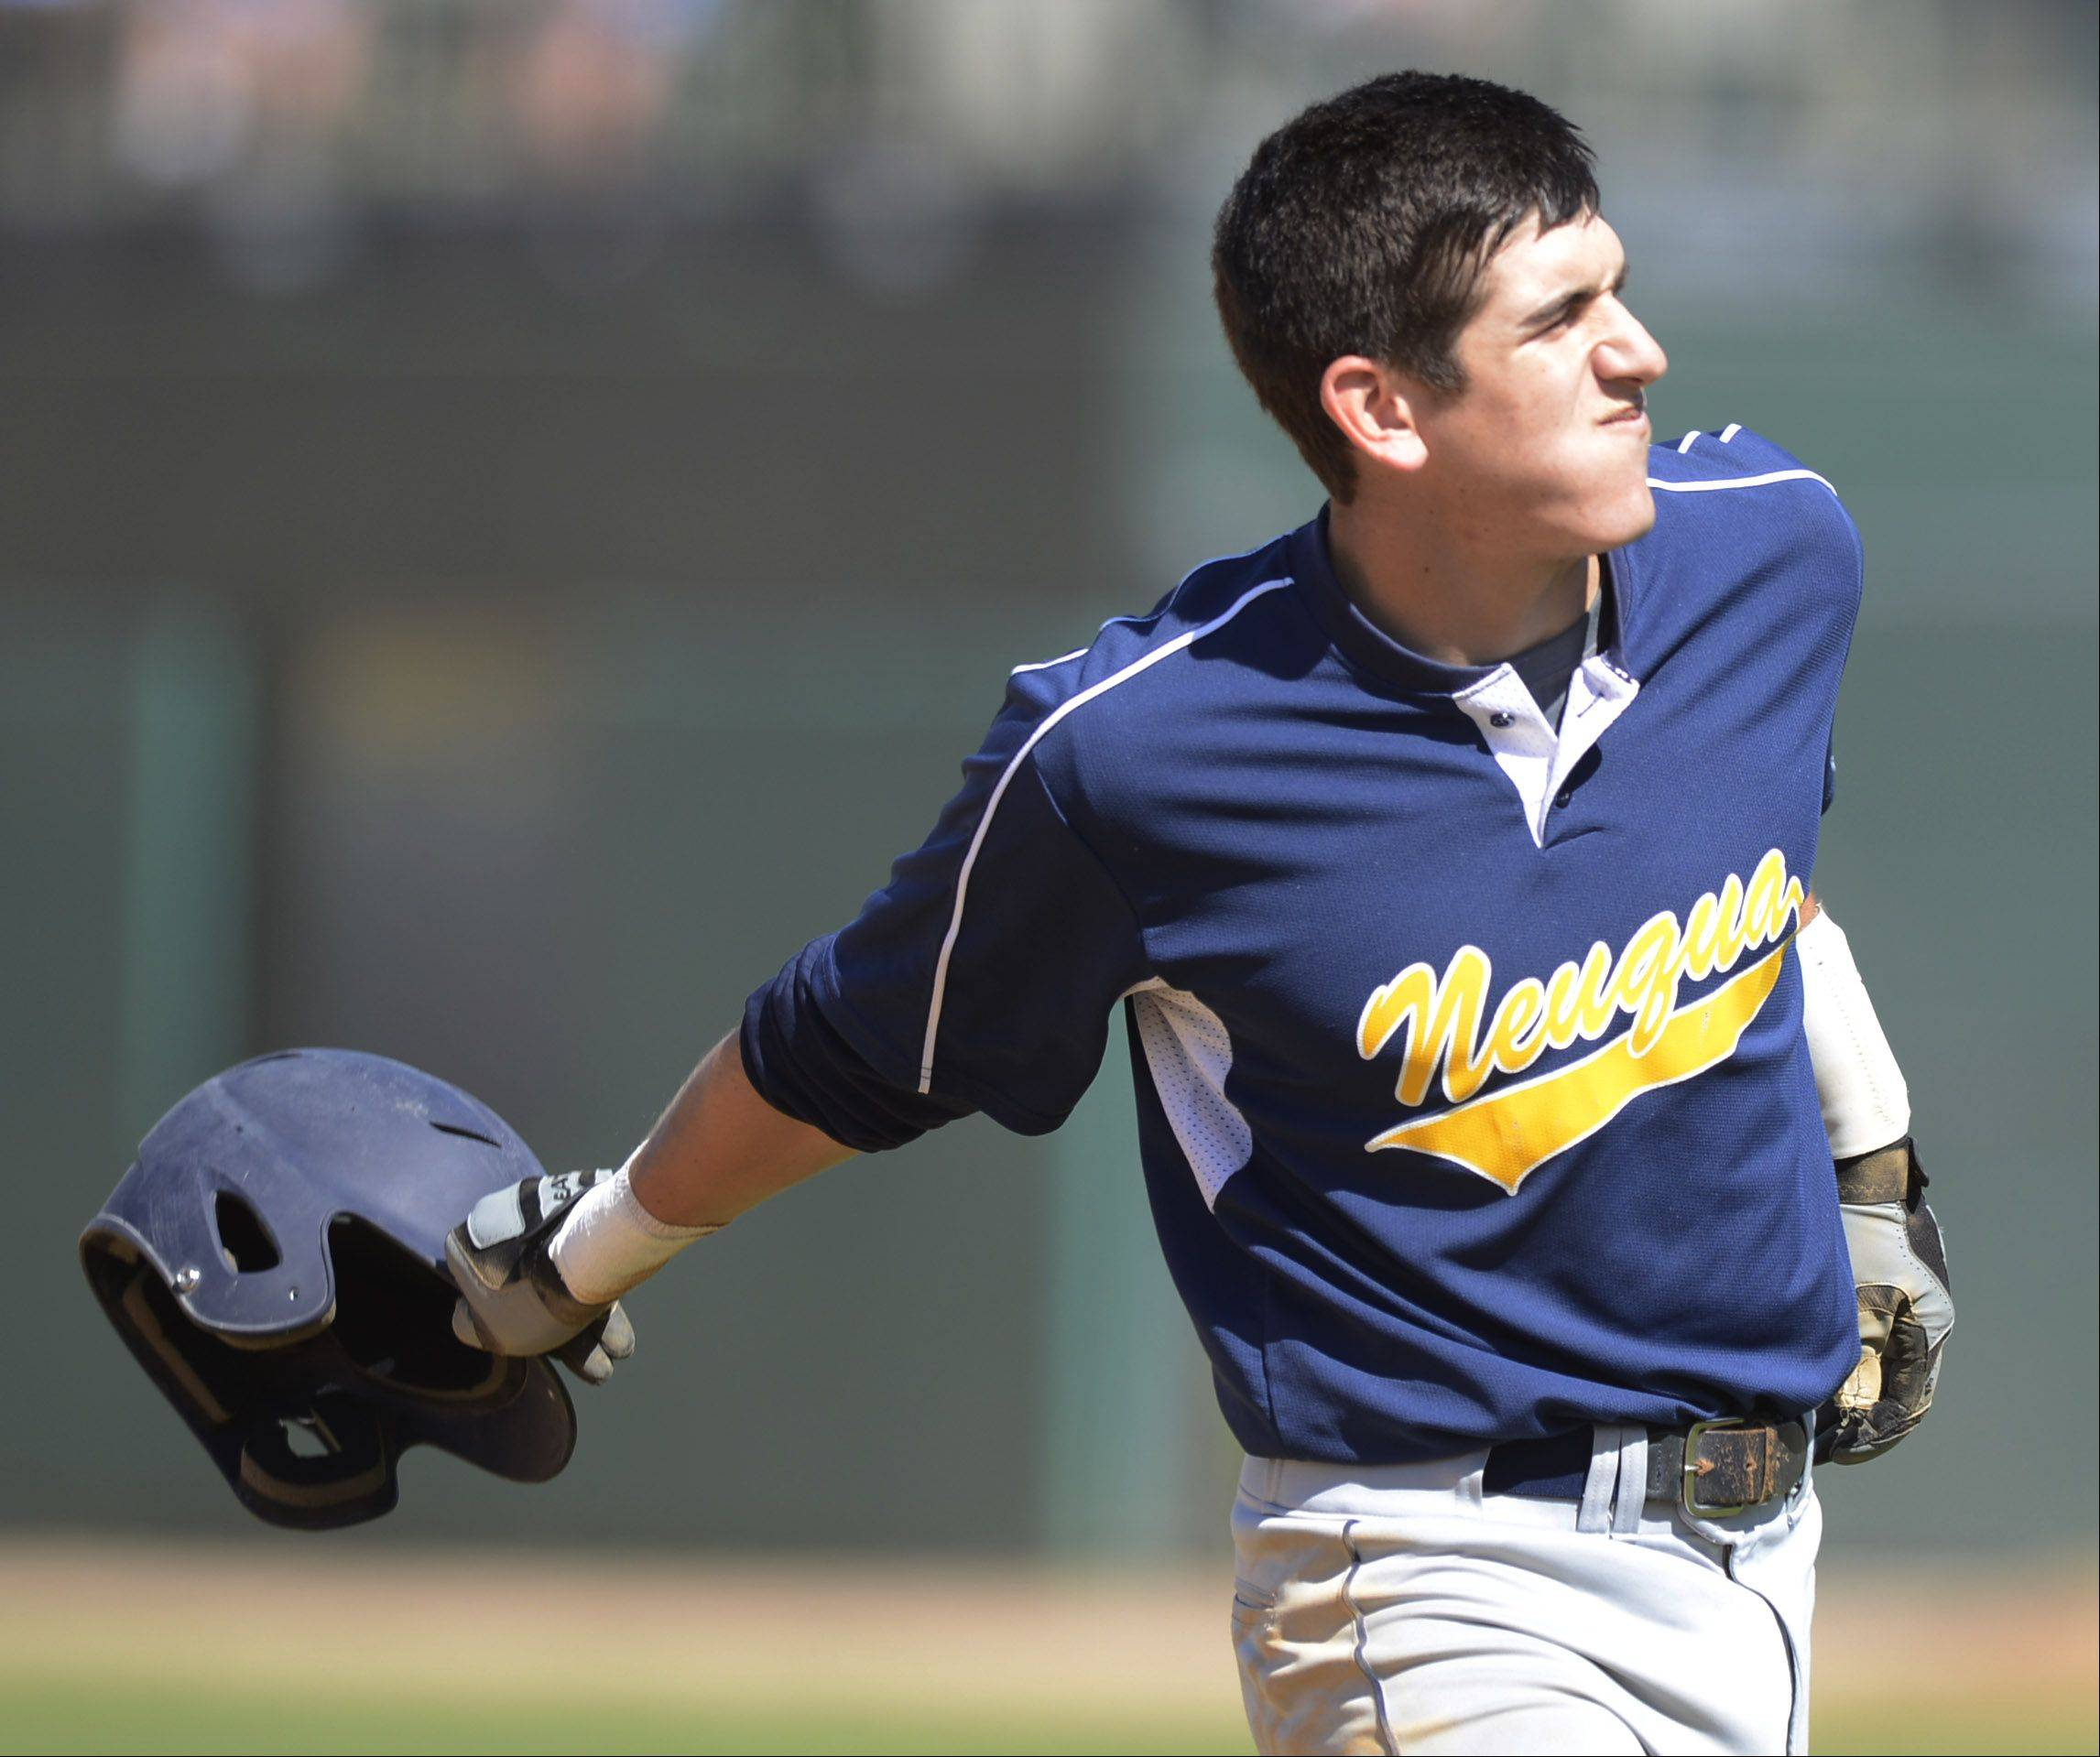 Images: Neuqua Valley vs. Mt. Carmel State Semifinal Baseball